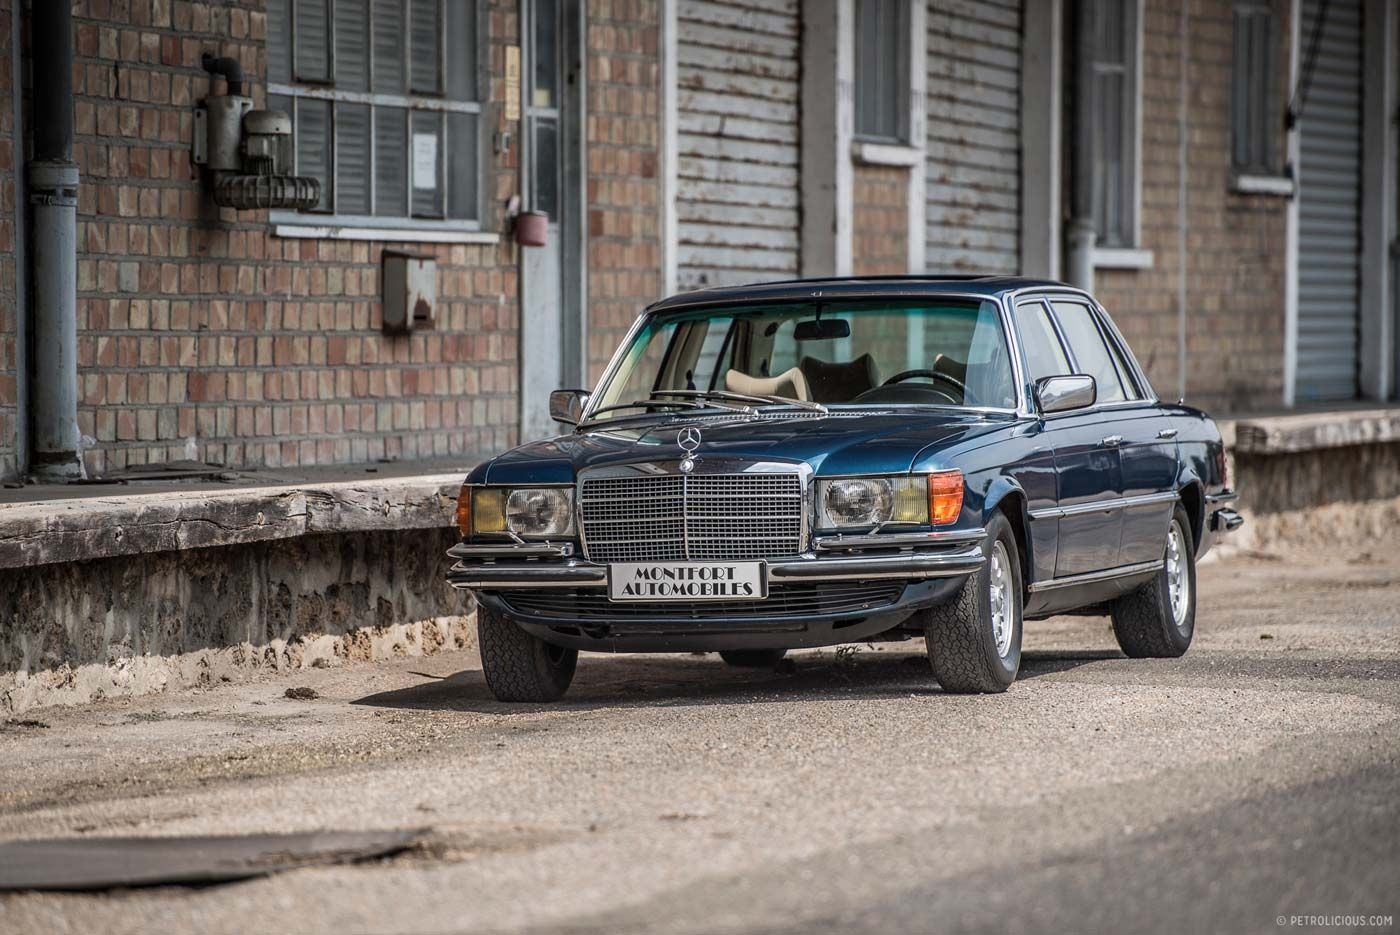 Mercedes Benz 450sel 69 Was All About Engineering Cars Http Petroliciouscom 6